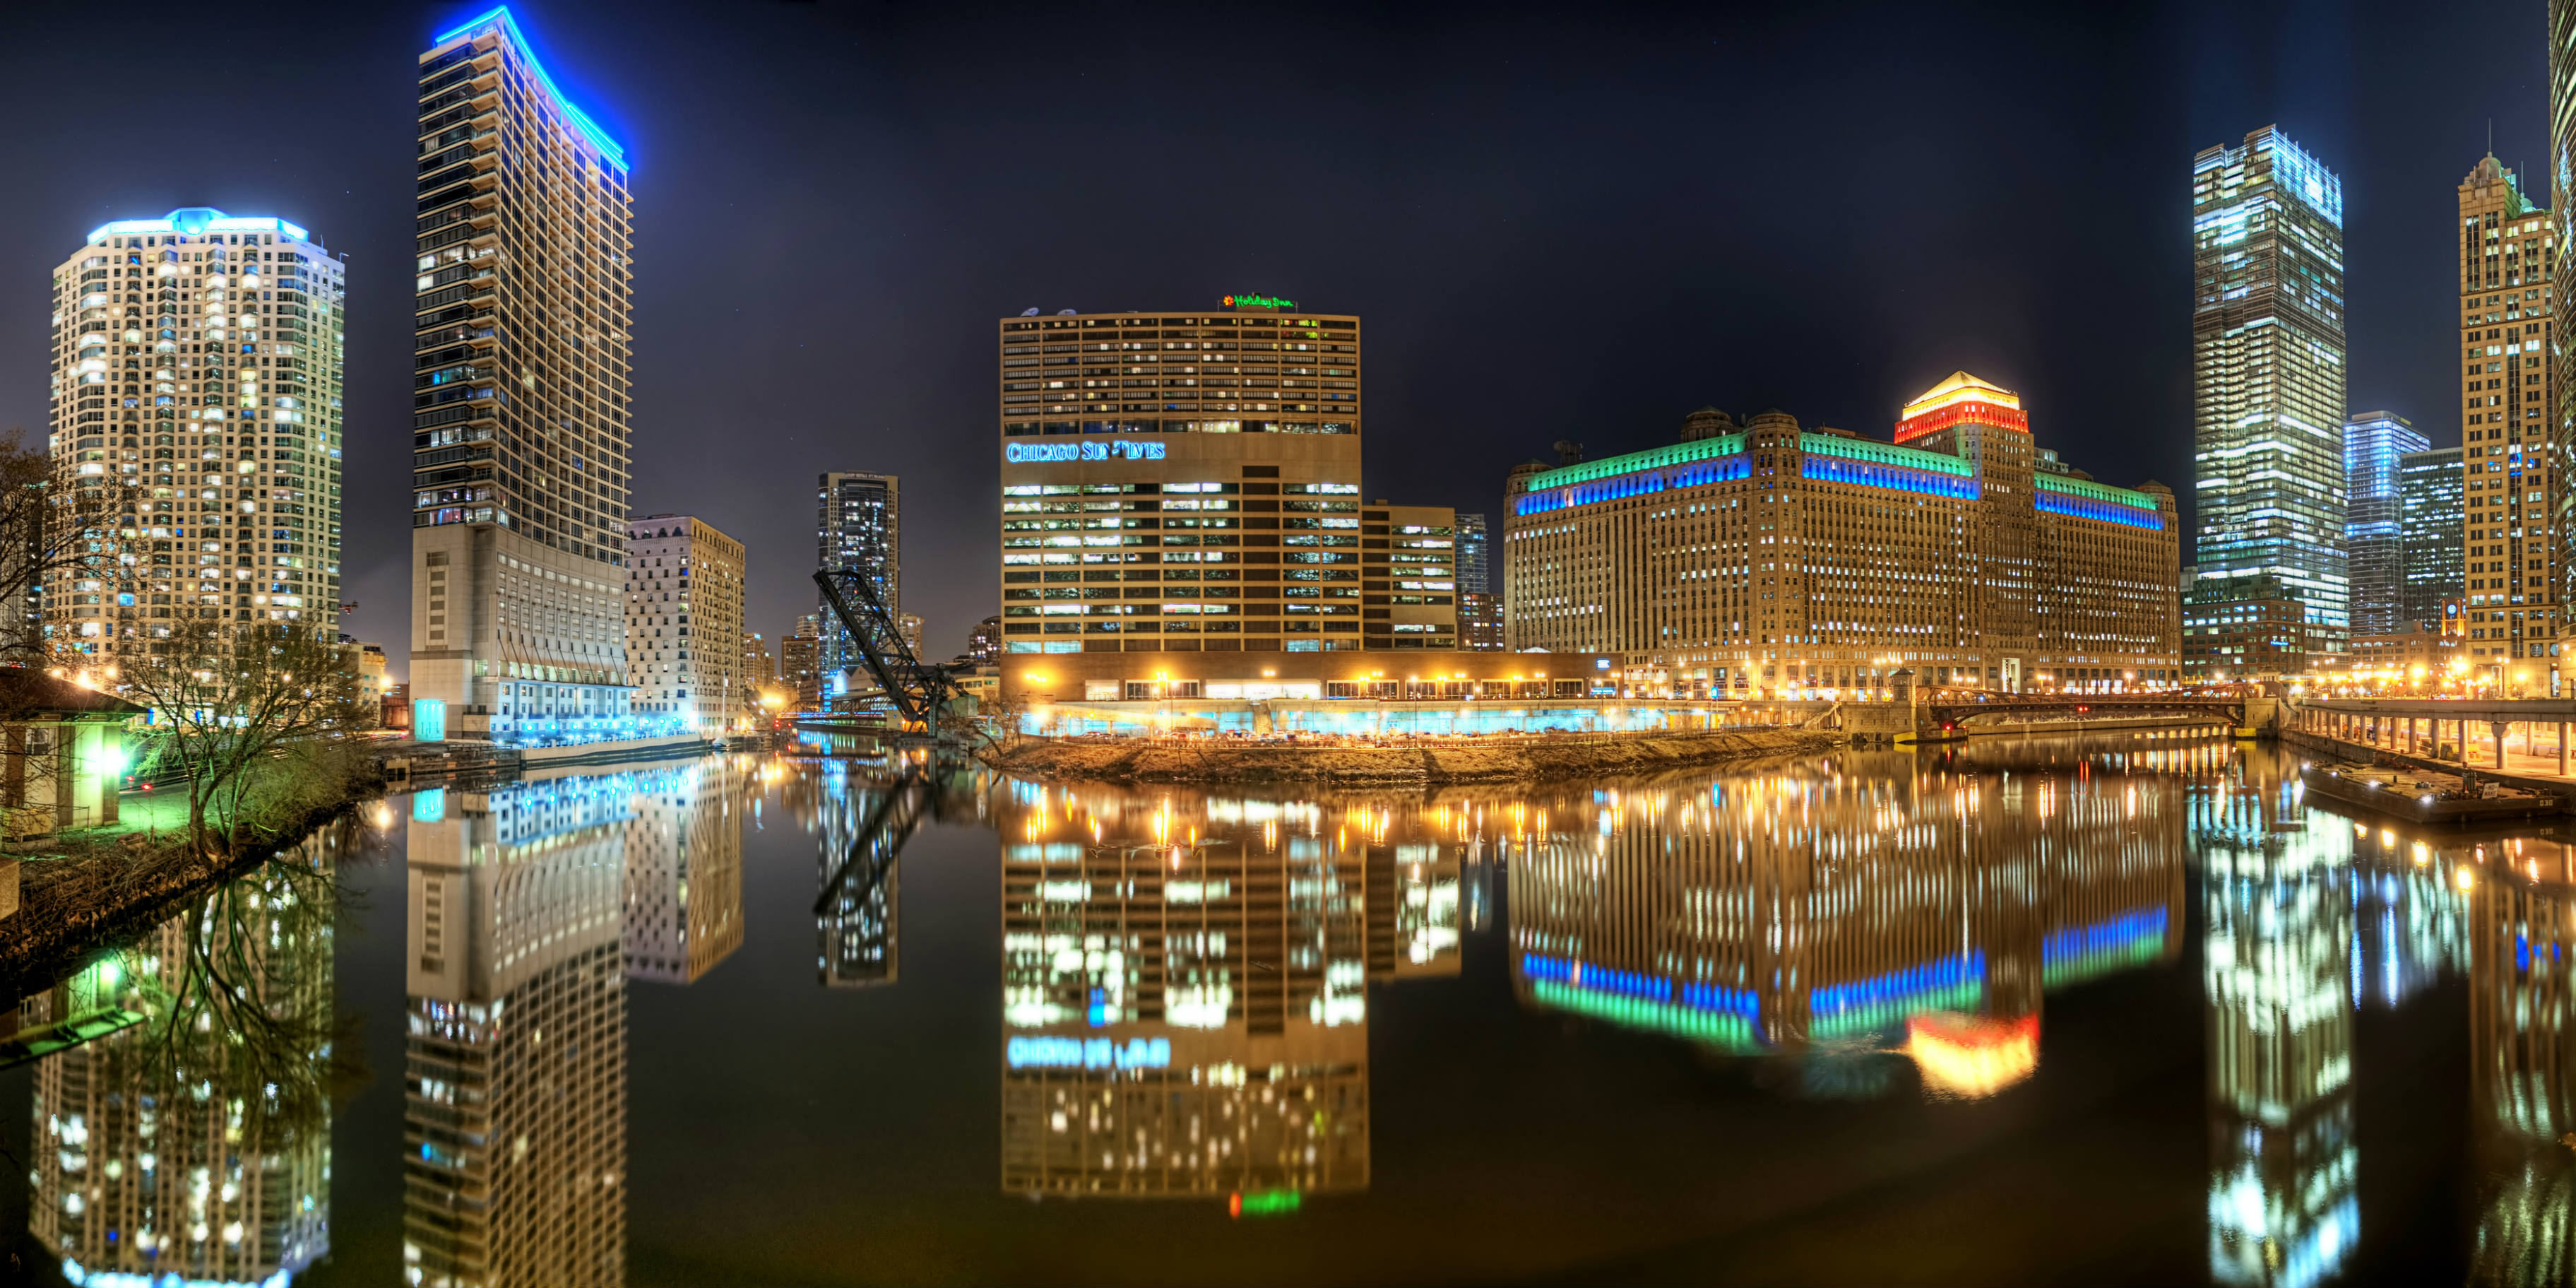 Chicago river at night - BANNER